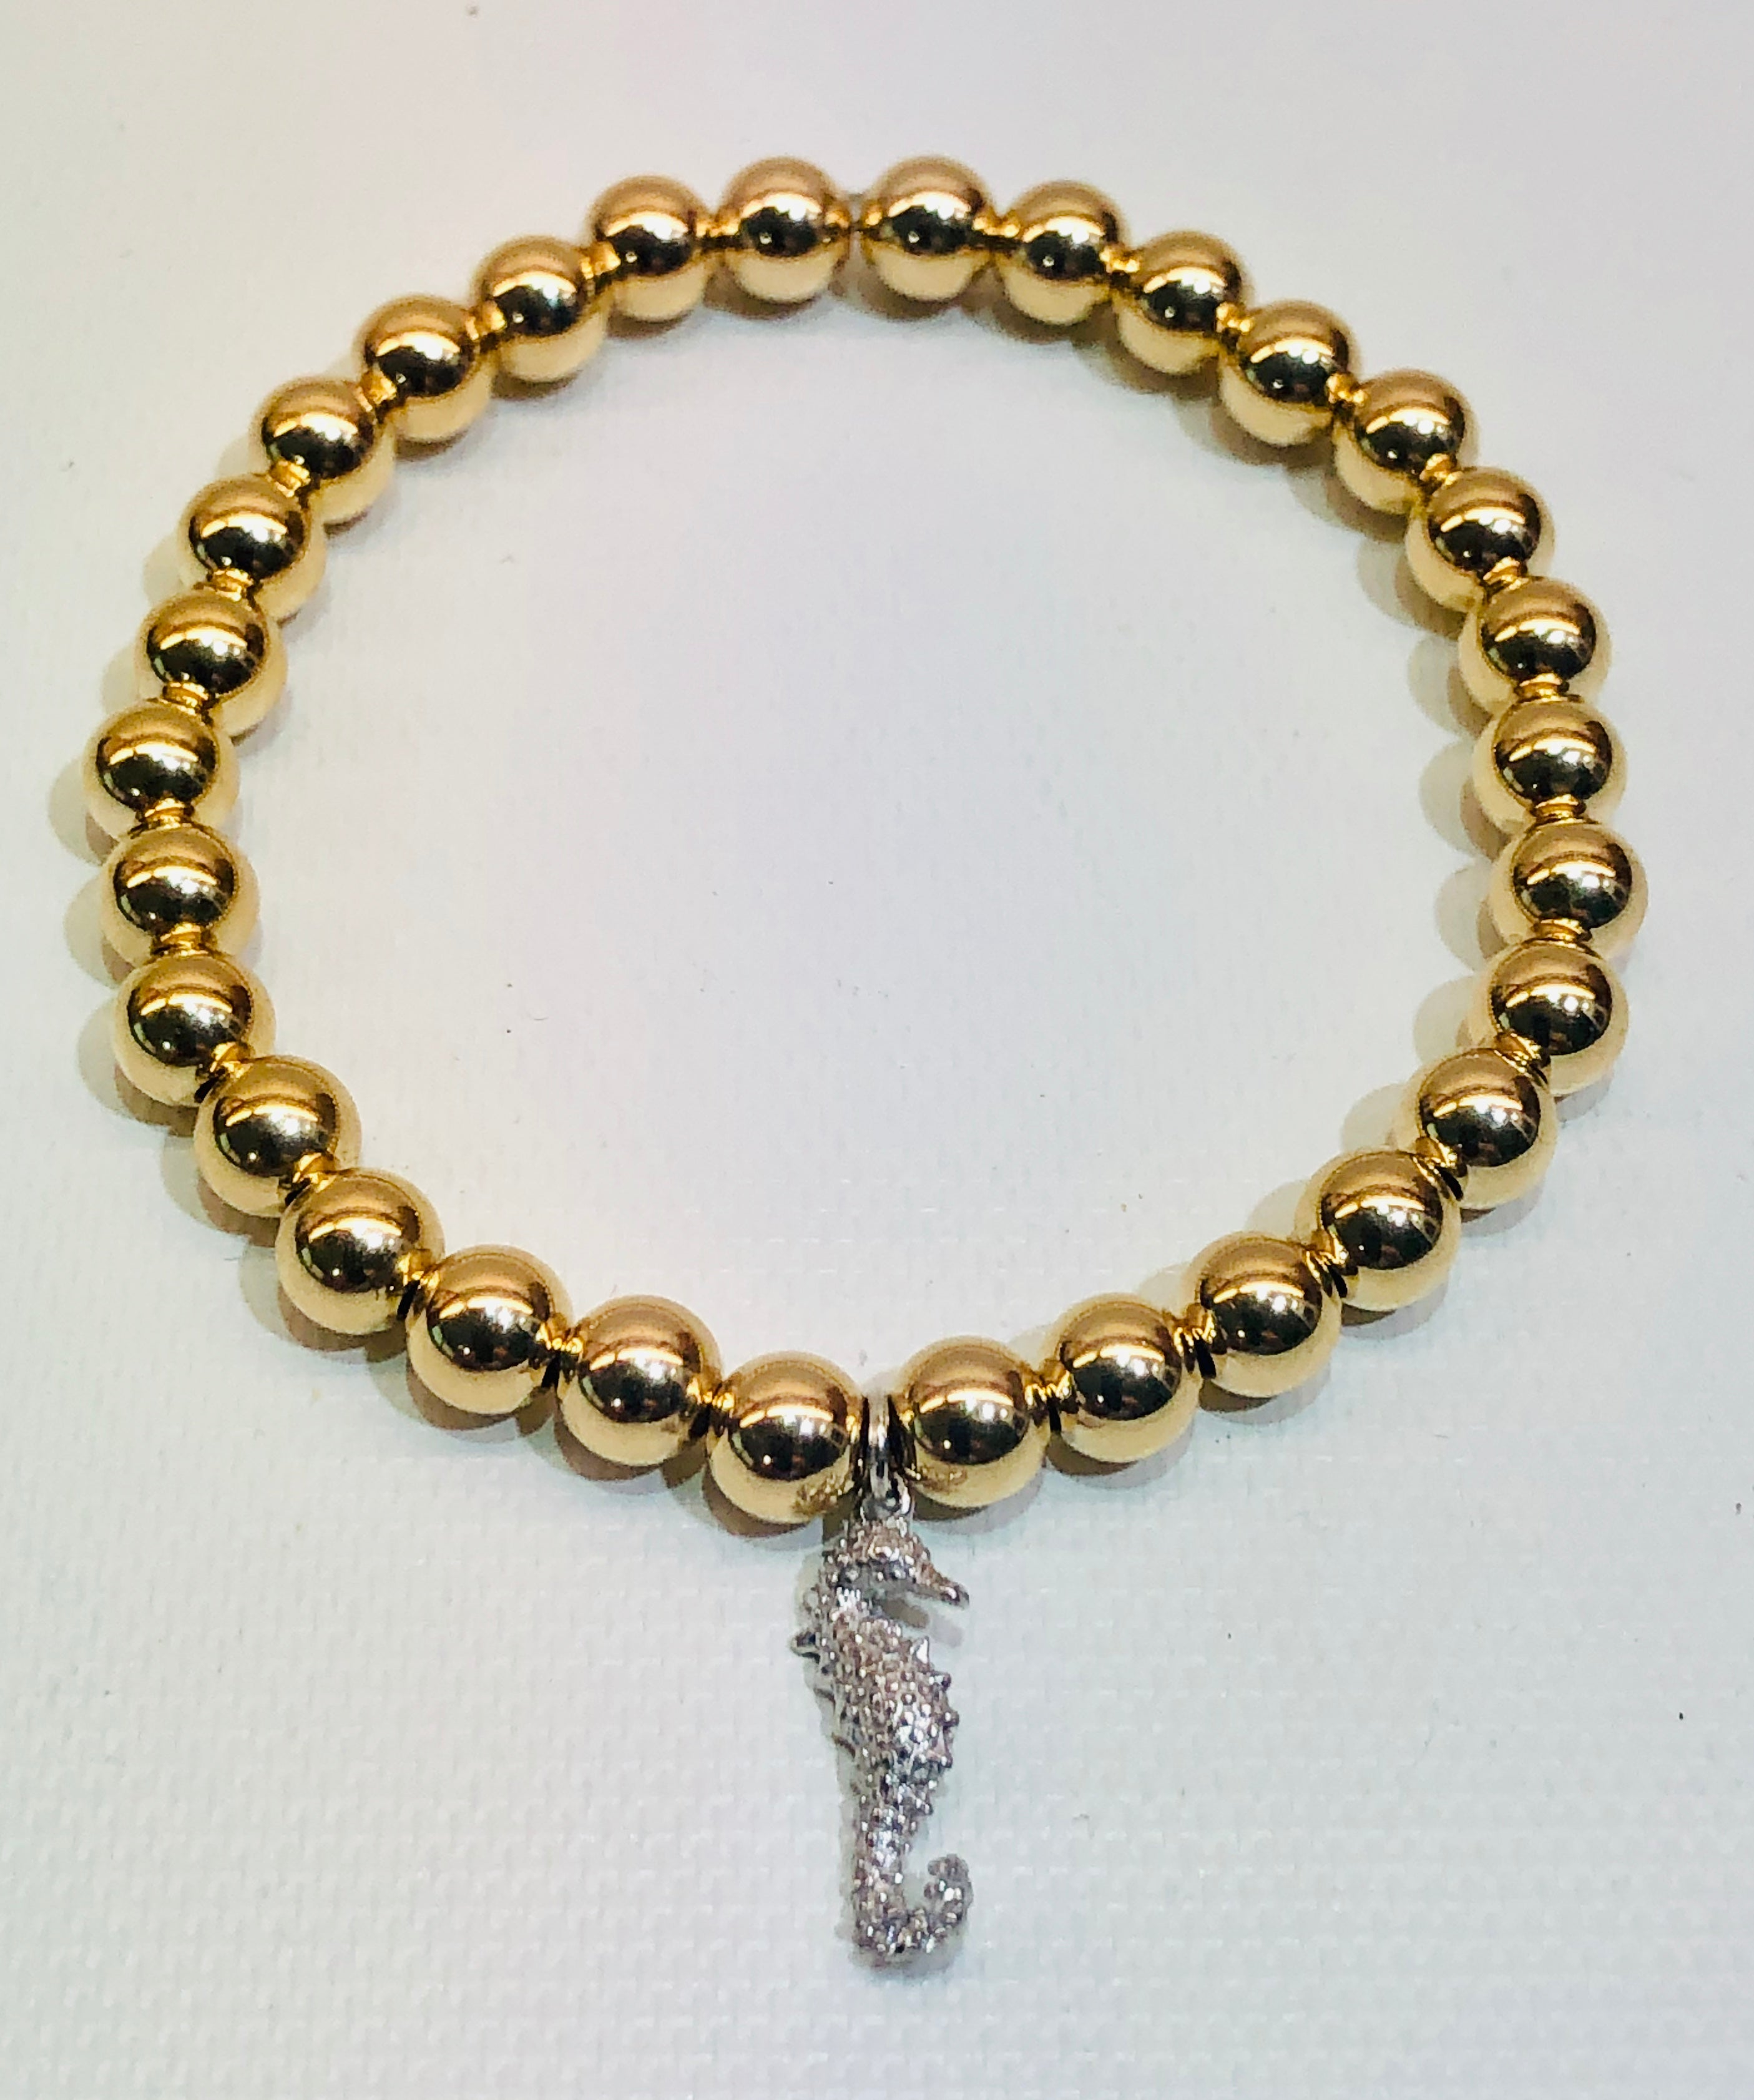 6mm 14kt Gold Filled Bead Bracelet with Silver Seahorse